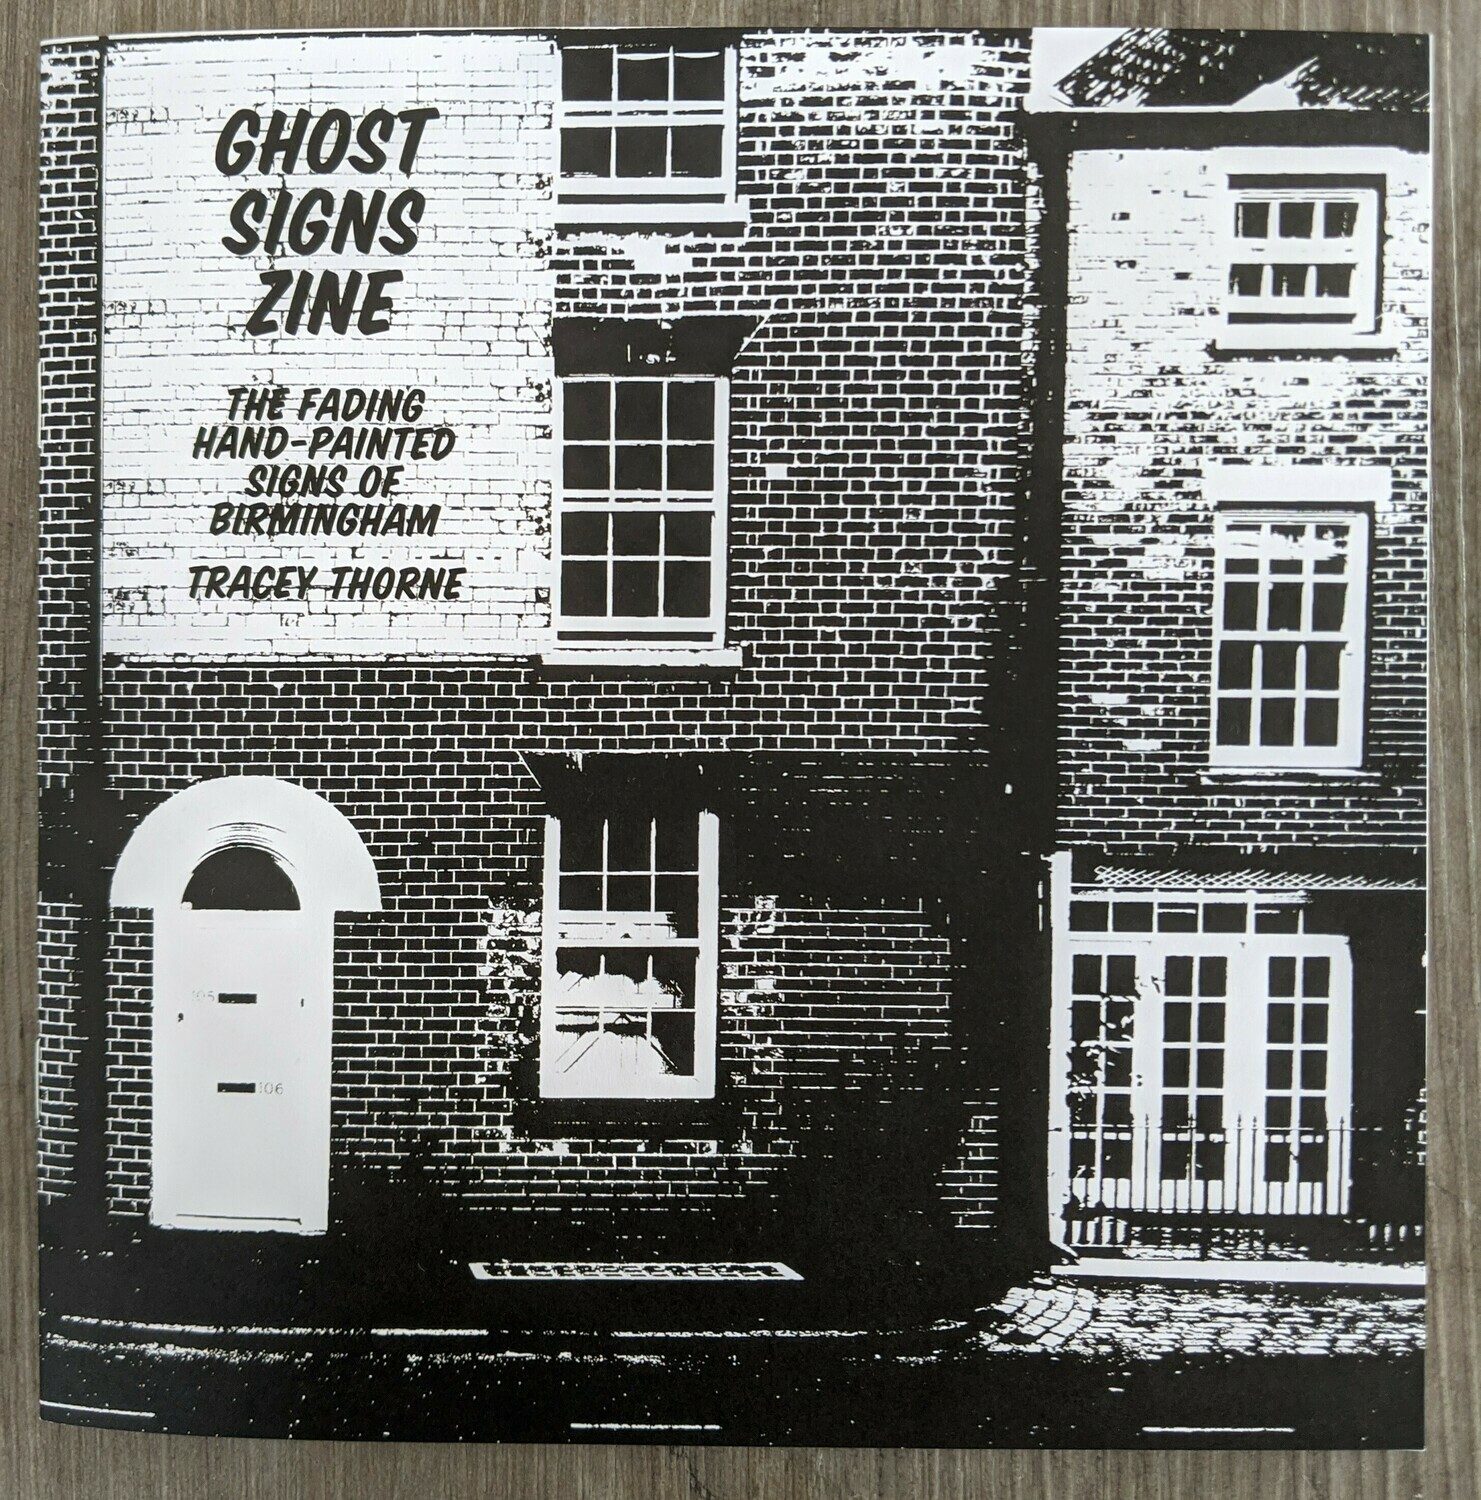 Ghost Signs Zine